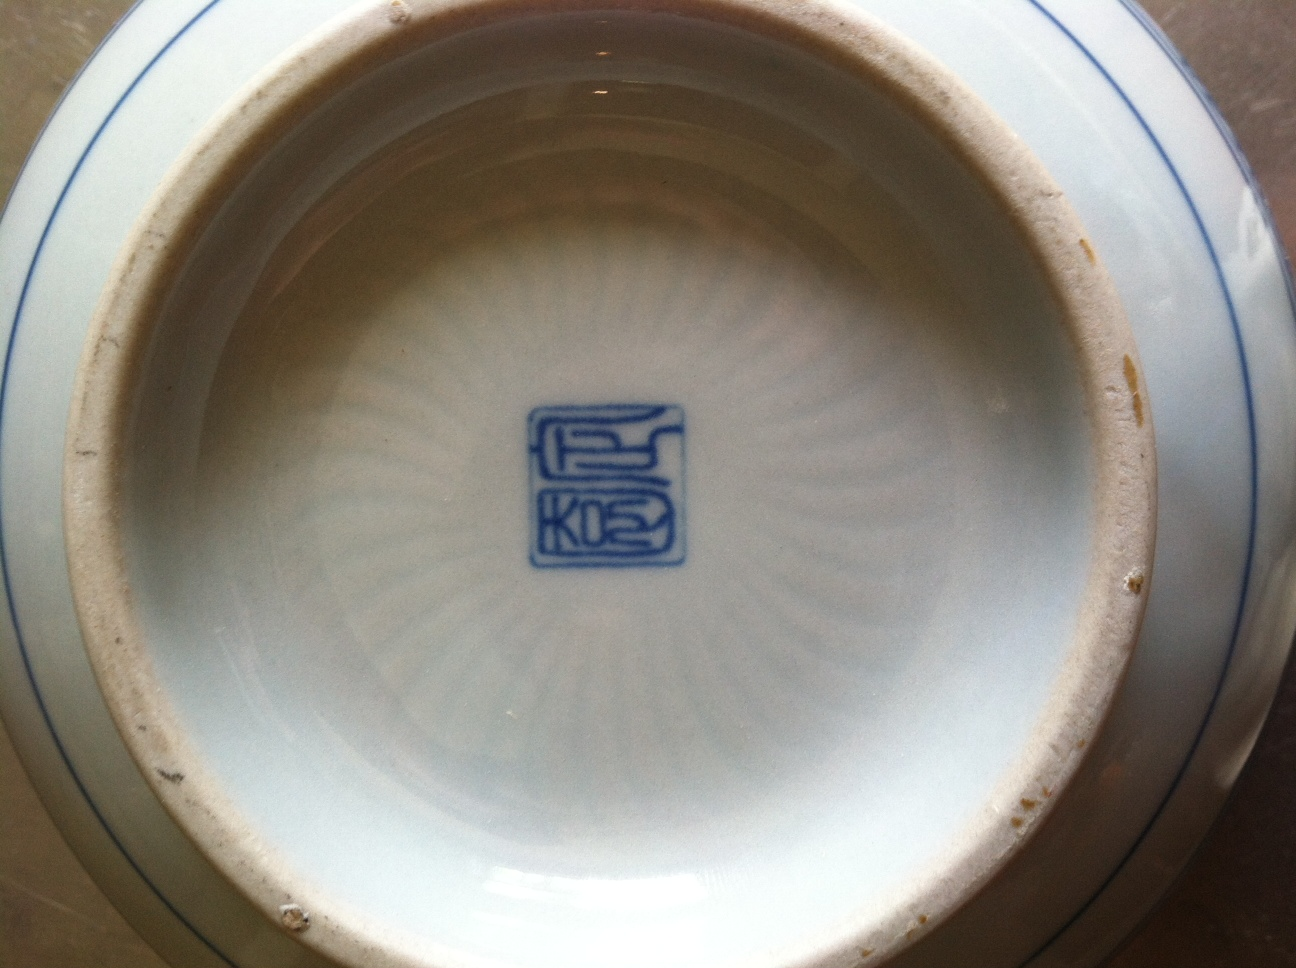 Japanese Porcelain Need Help Identifying Symbol The